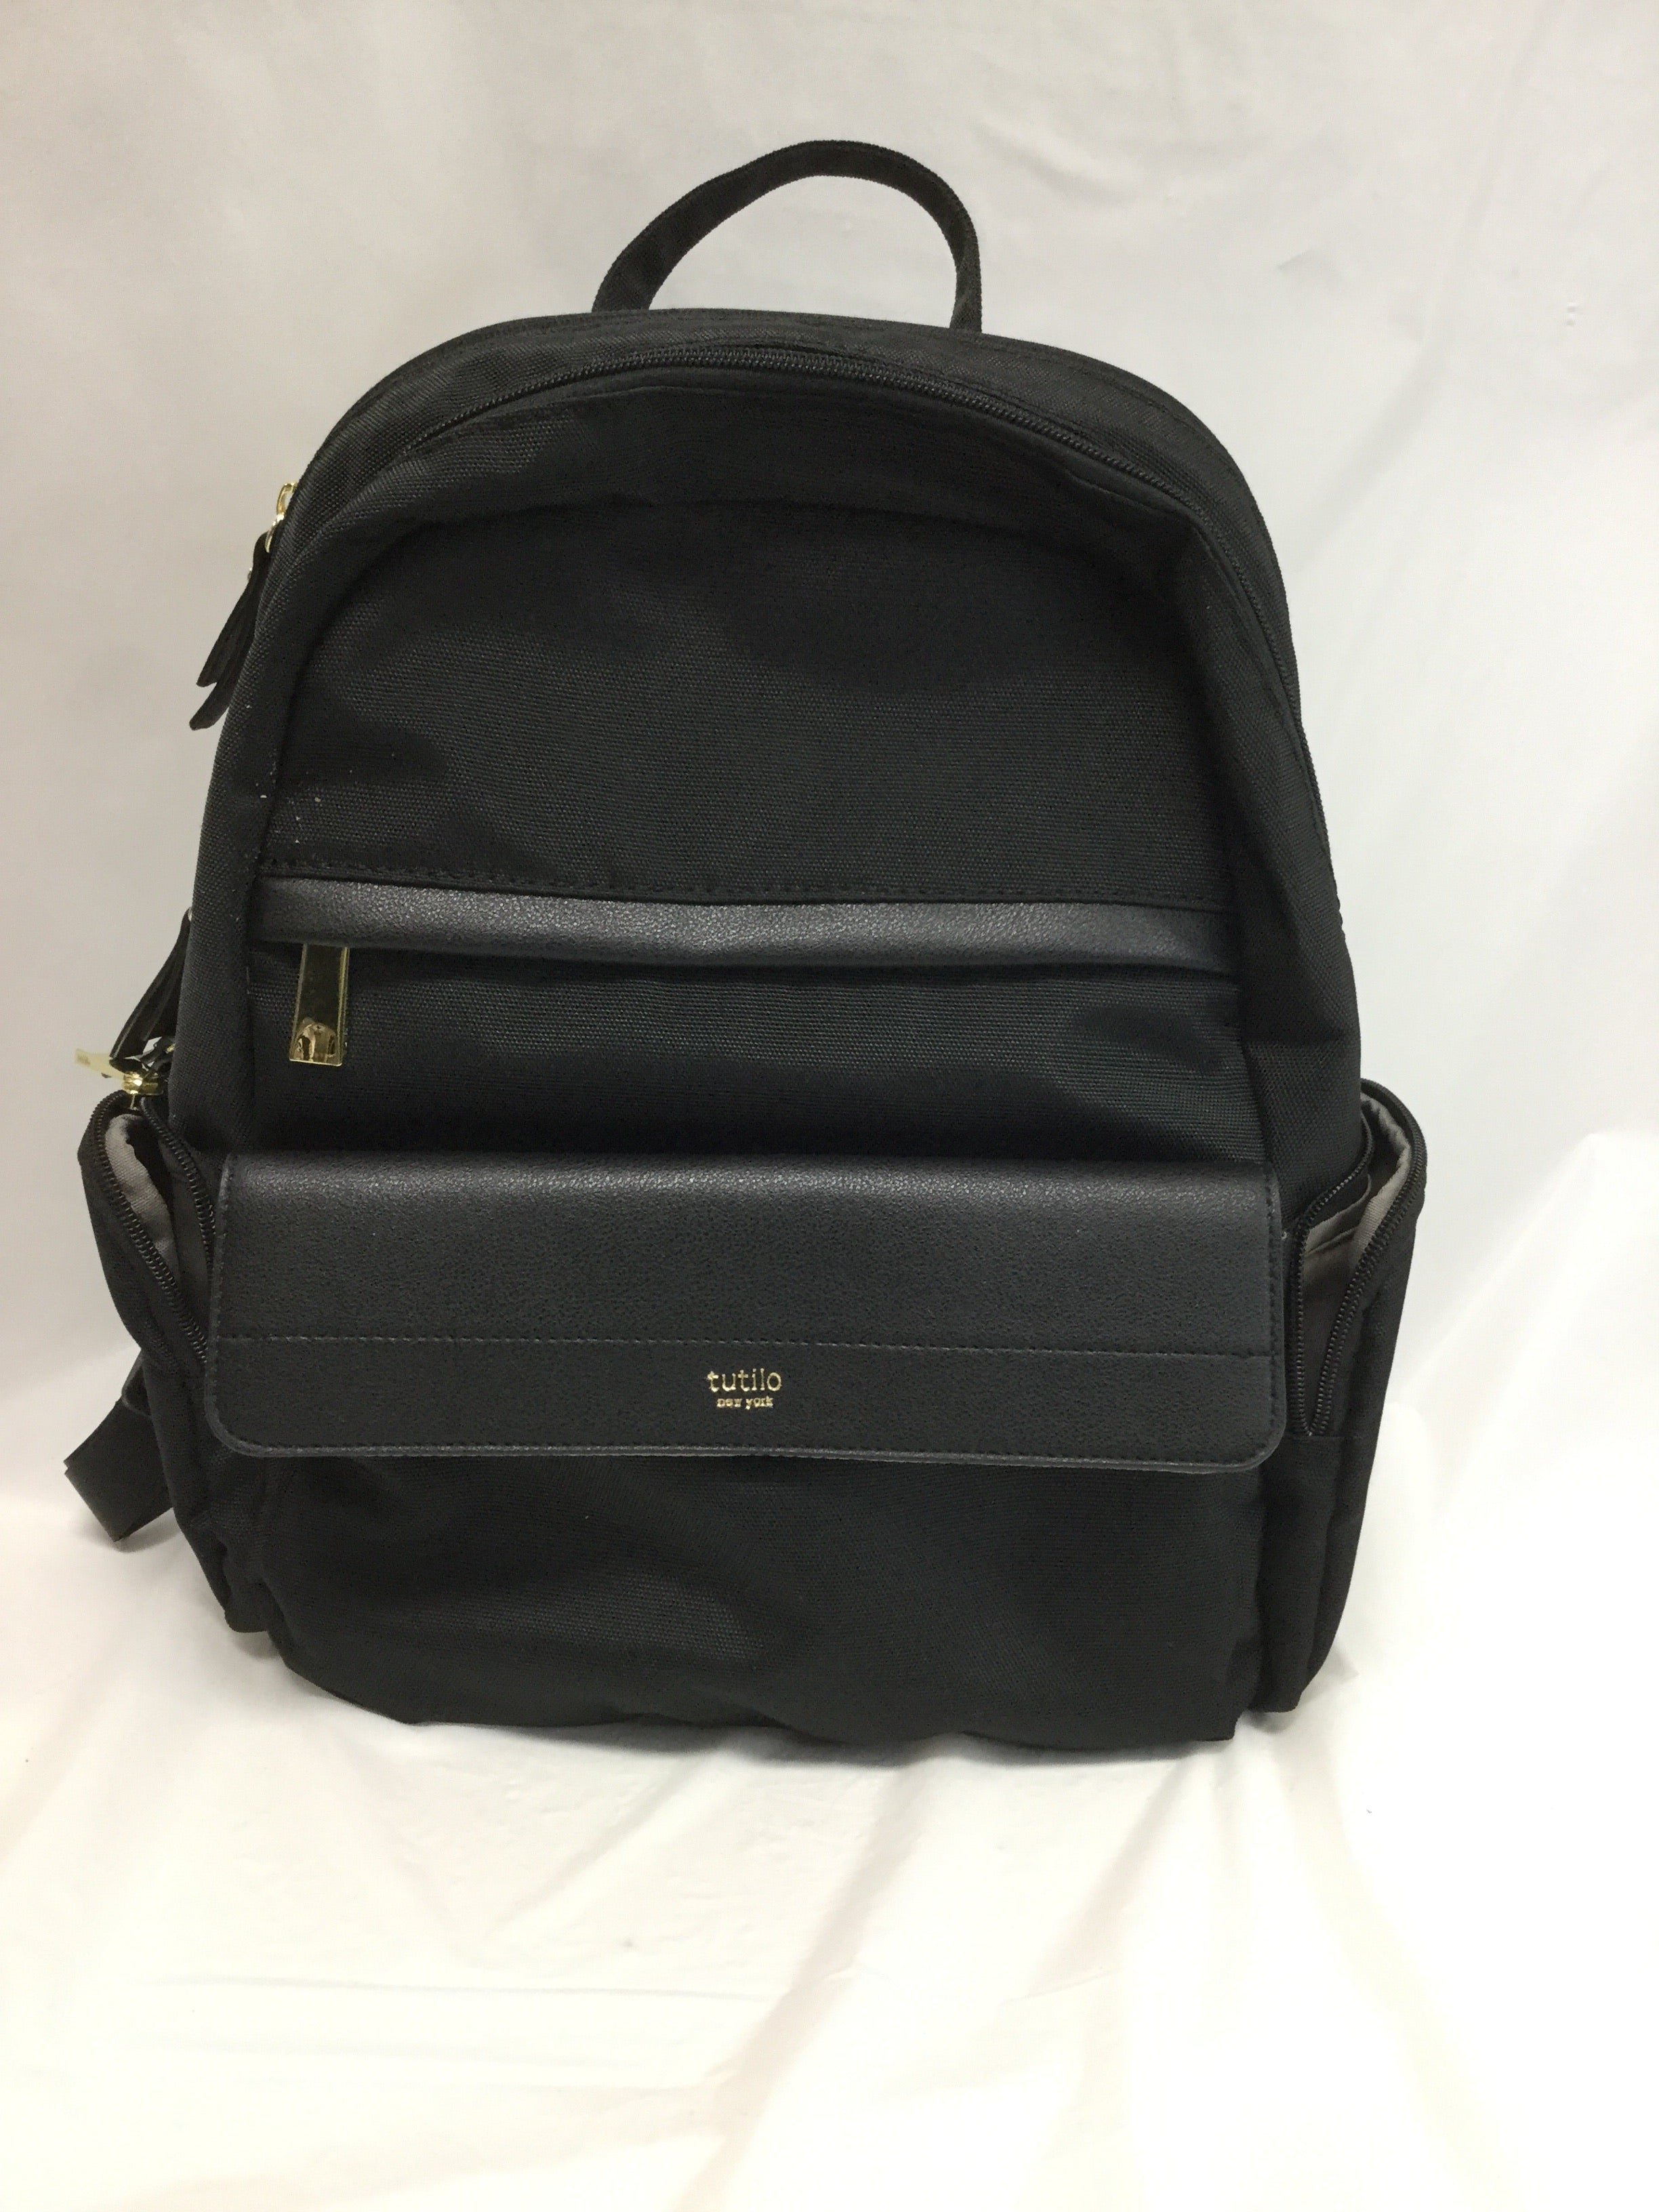 Primary Photo - BRAND:   CMC <BR>STYLE: BACKPACK <BR>COLOR: BLACK <BR>SIZE: MEDIUM <BR>OTHER INFO: TUTILO NEW YORK - <BR>SKU: 155-155227-116<BR>GOLD HARDWARE, APPROX. 14'X20'<BR>